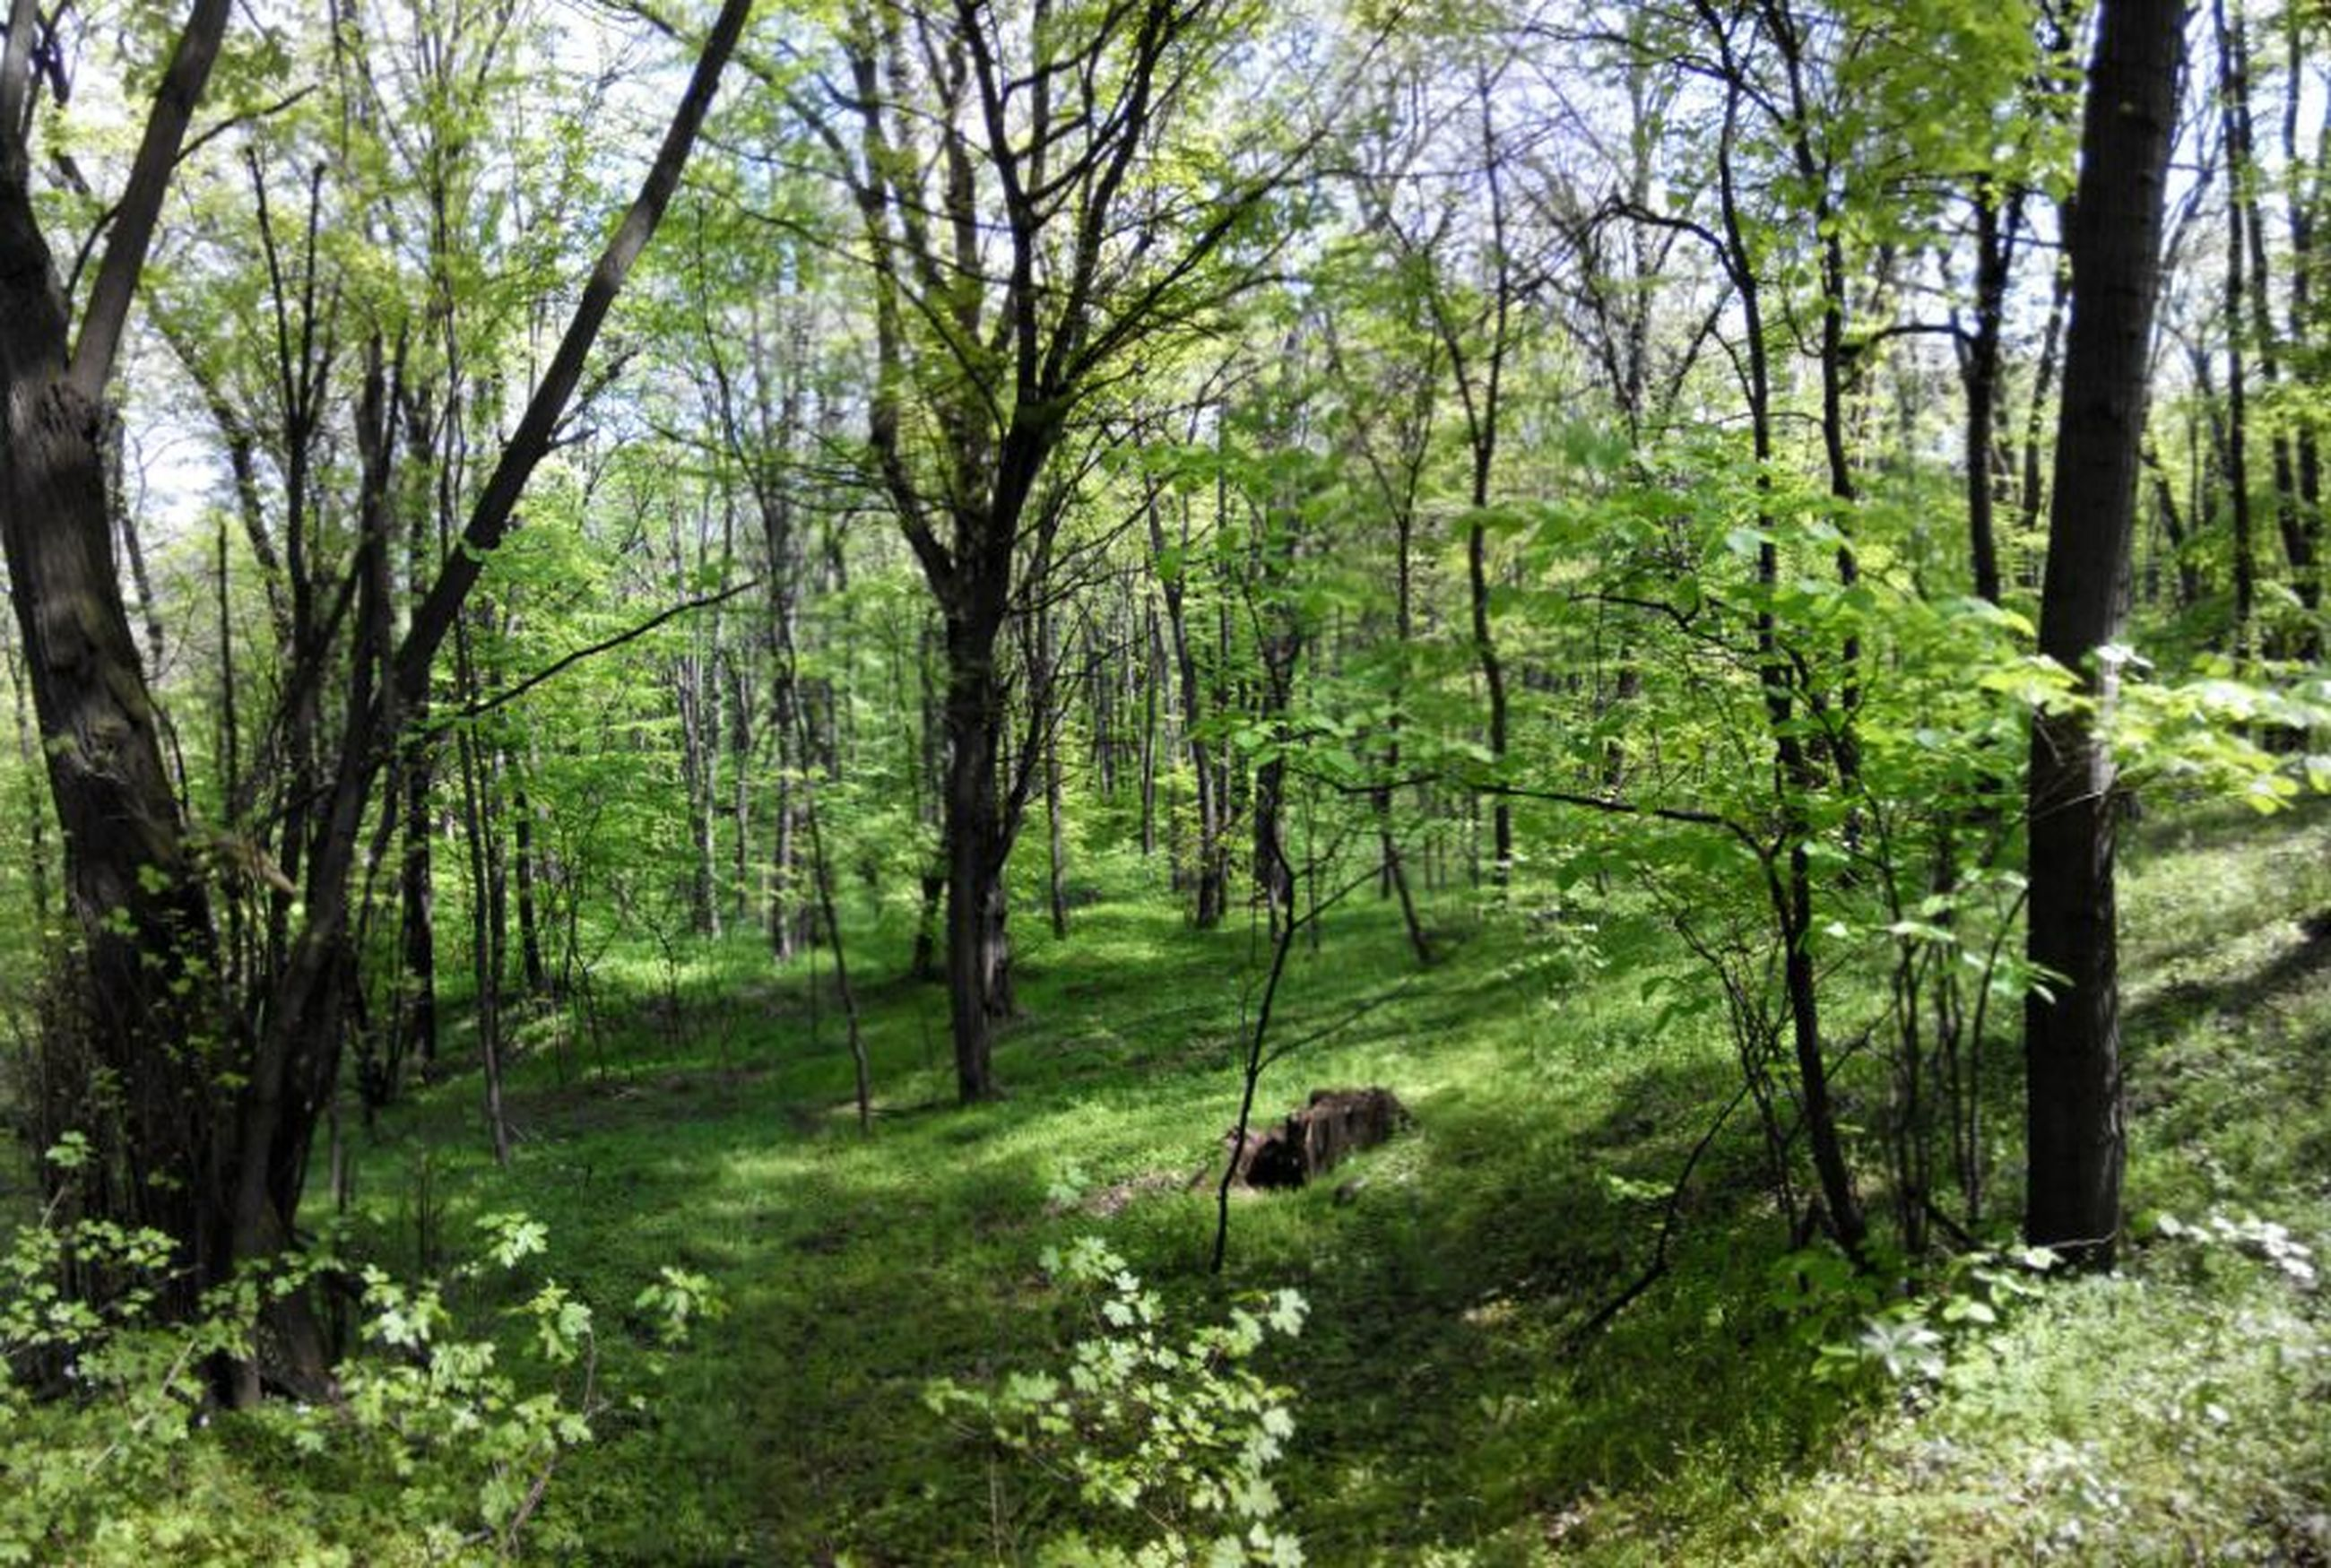 tree, forest, growth, tranquility, green color, tranquil scene, beauty in nature, tree trunk, nature, scenics, woodland, branch, lush foliage, non-urban scene, landscape, green, plant, idyllic, grass, day